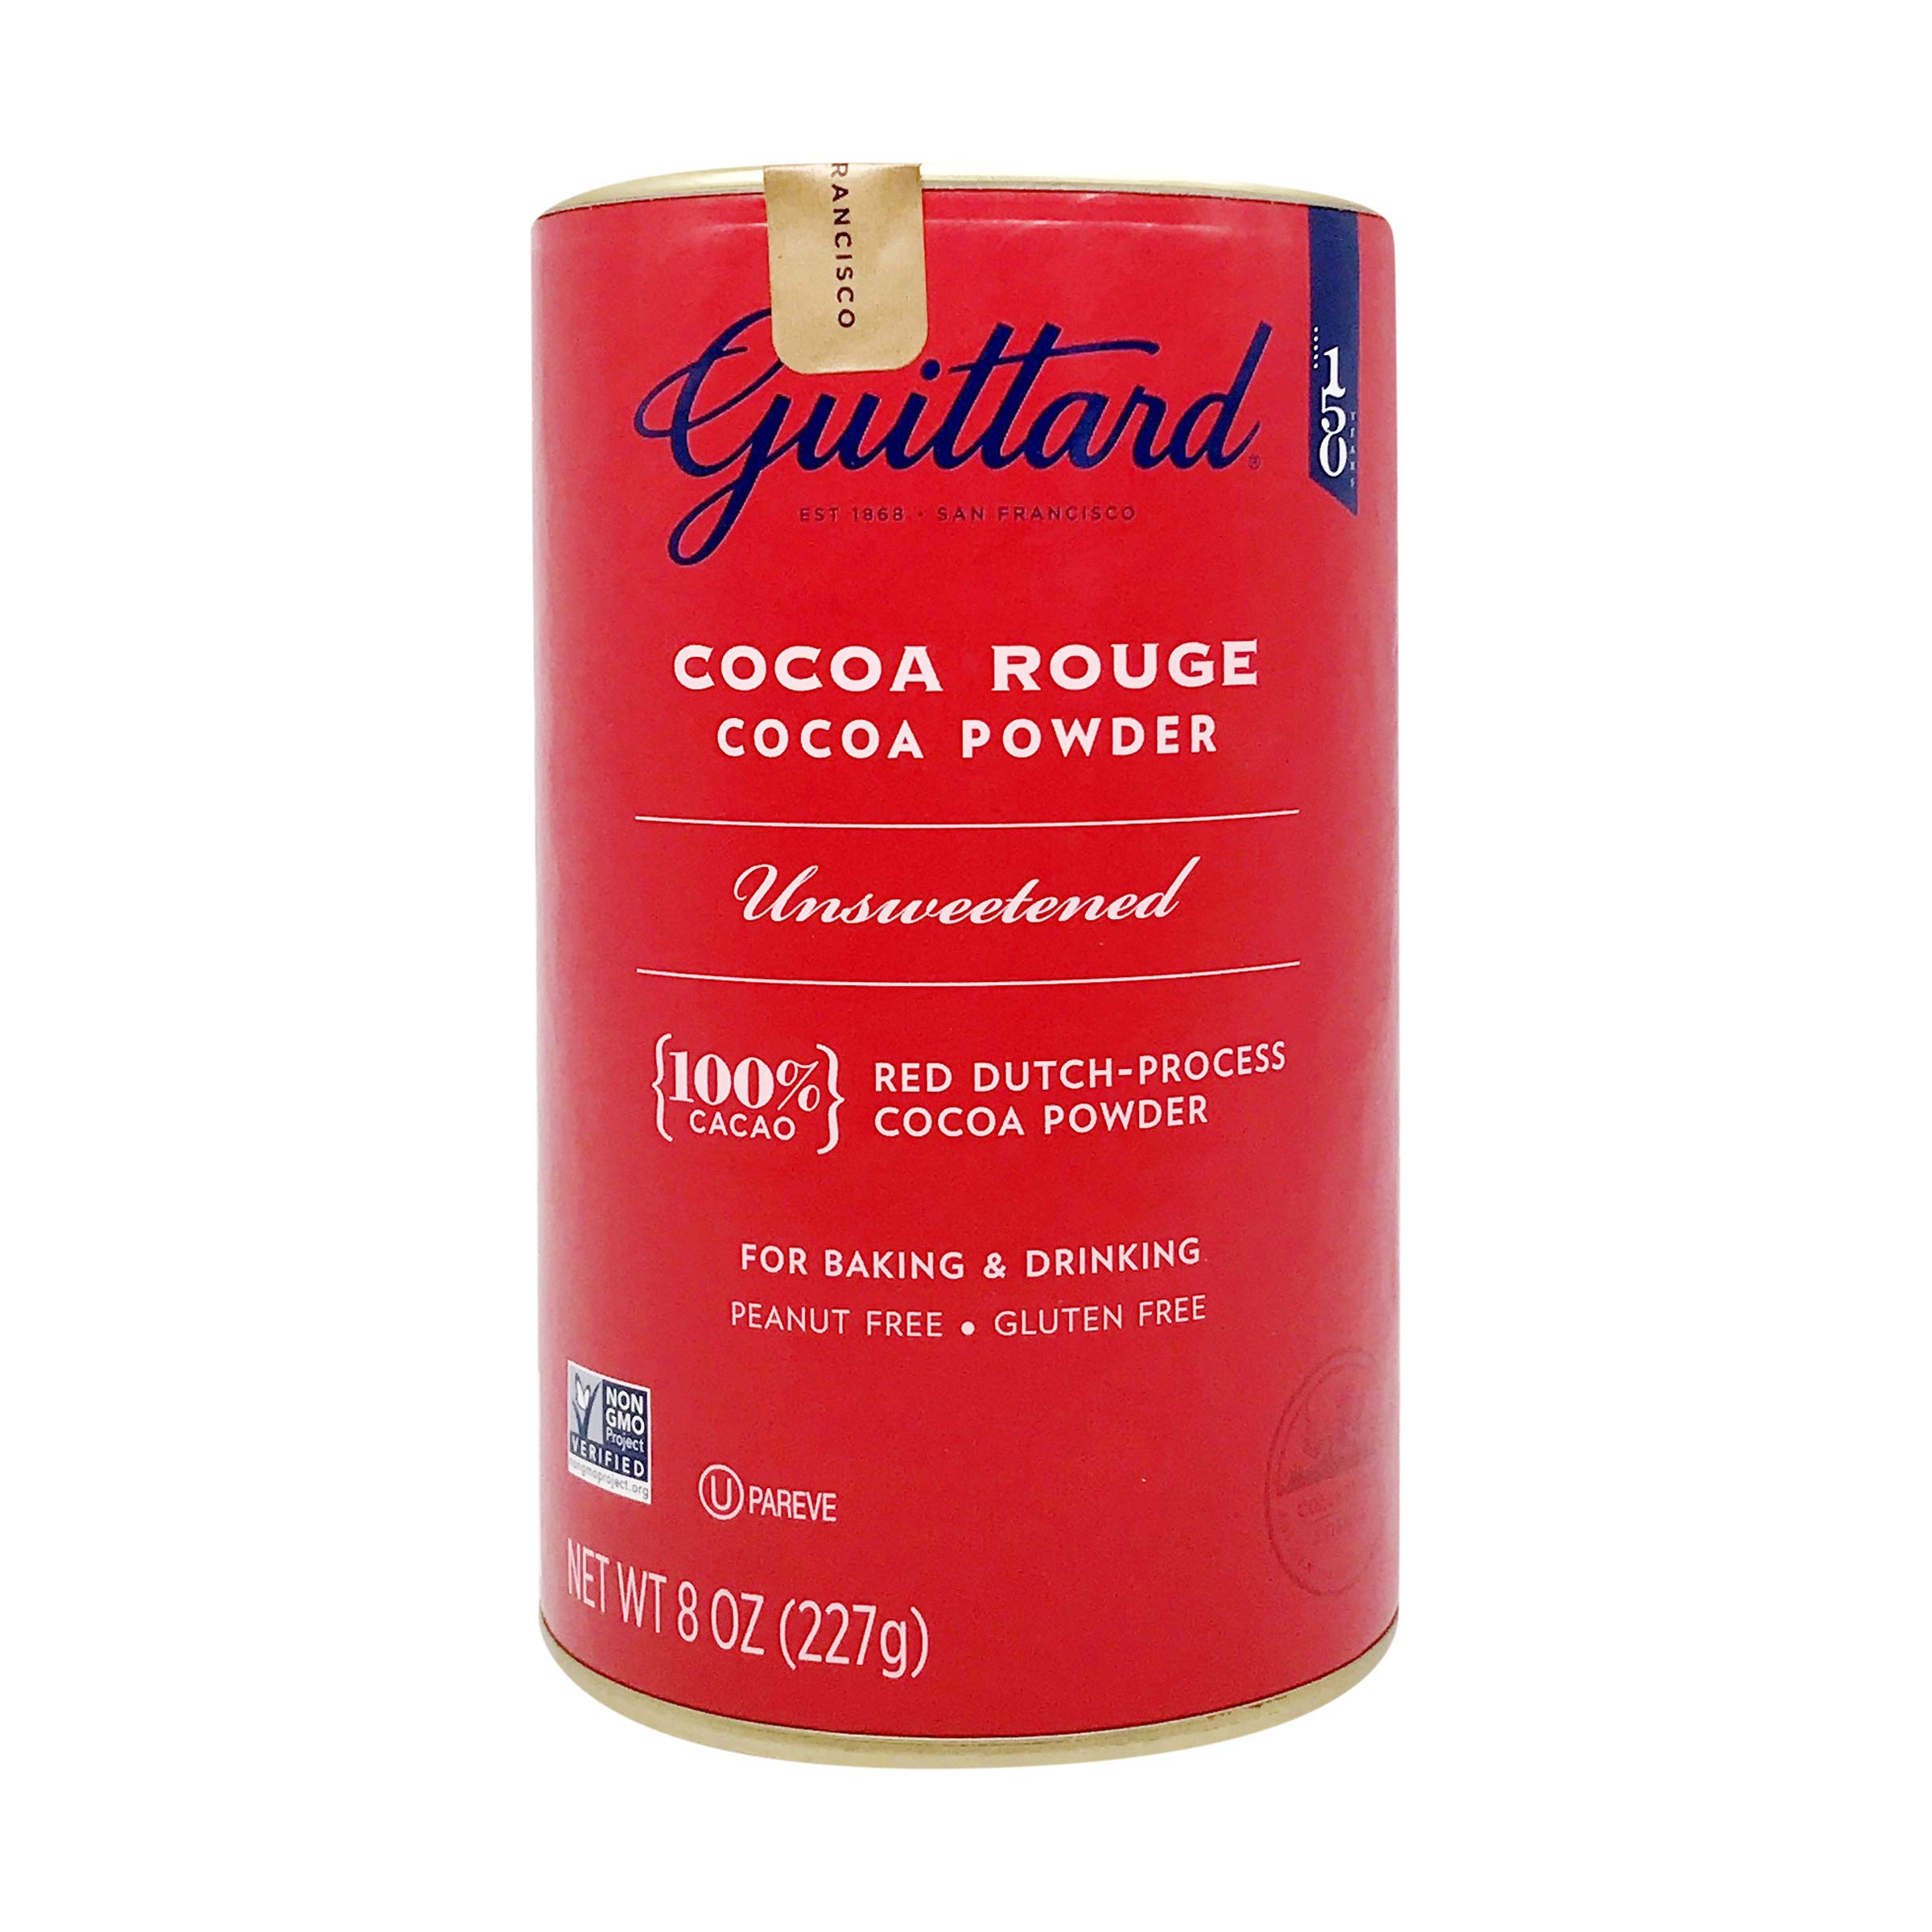 E Guittard Cocoa Powder, Unsweetened Rouge Red Dutch Process Cocoa, 8oz Can